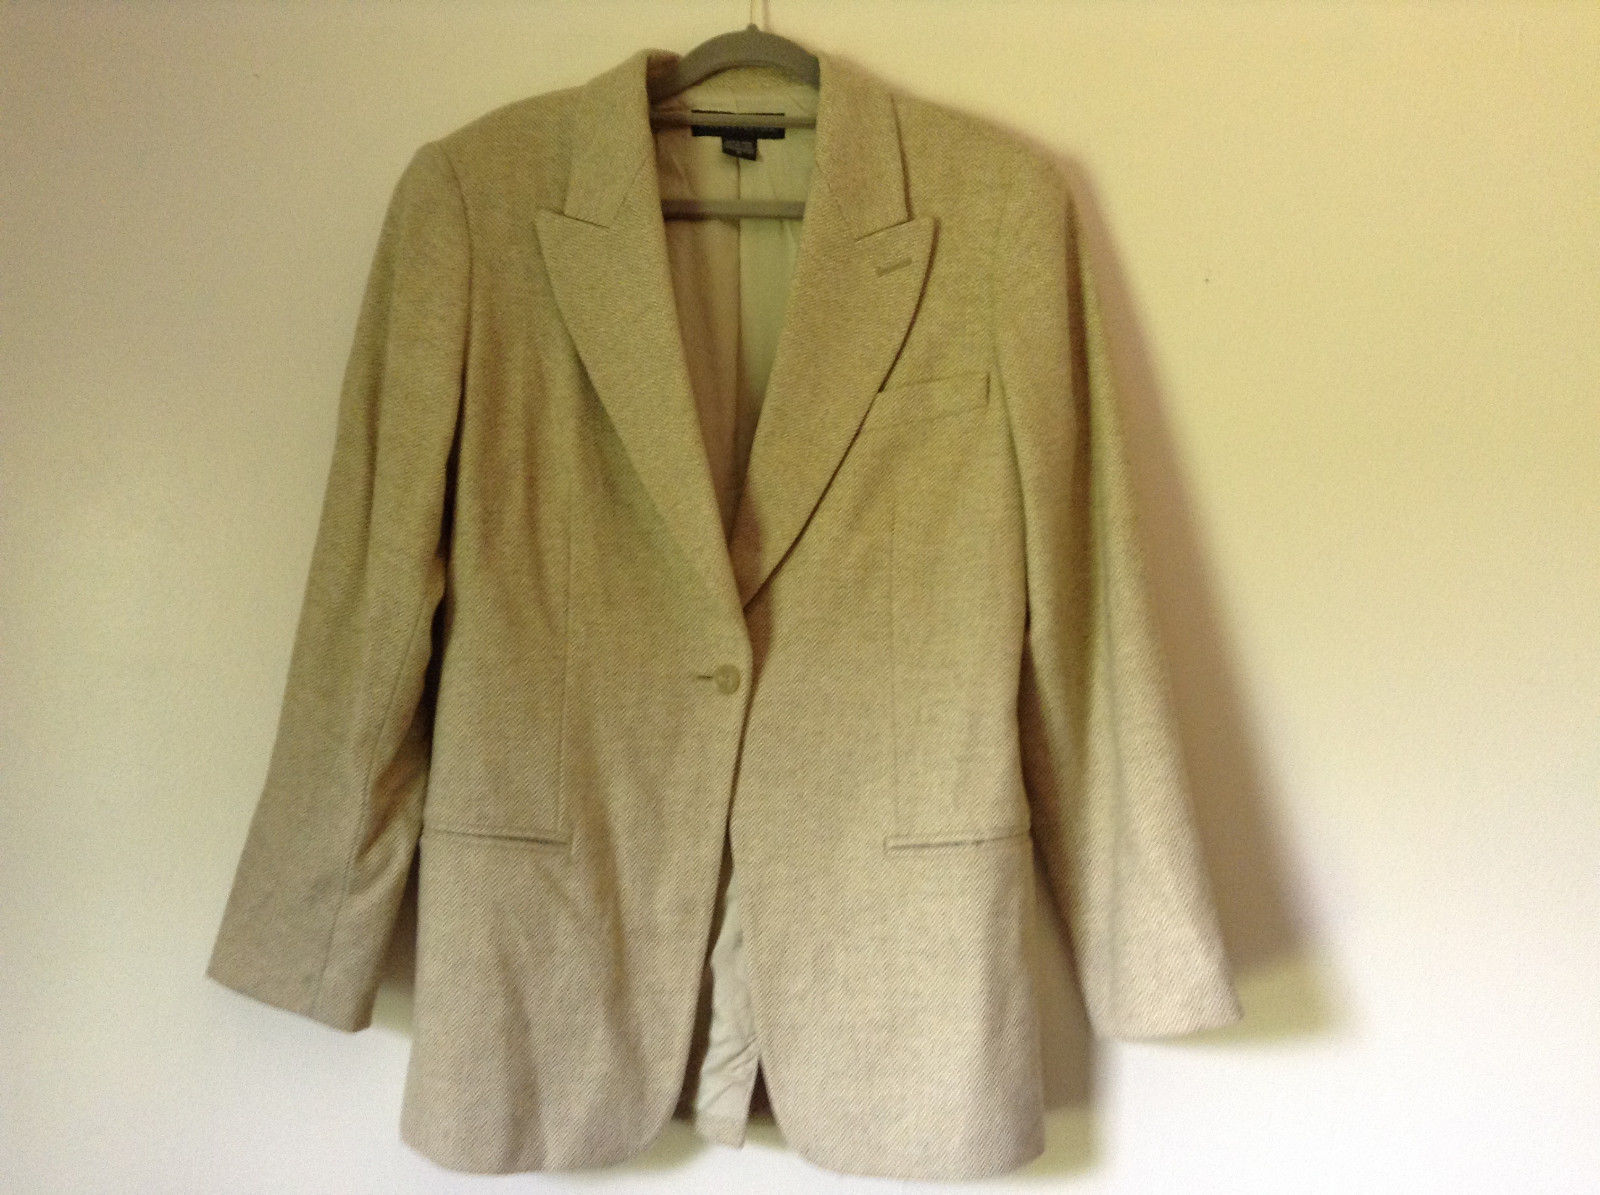 White and Light Brown Design Suit Jacket Blazer by Banana Republic Size 6